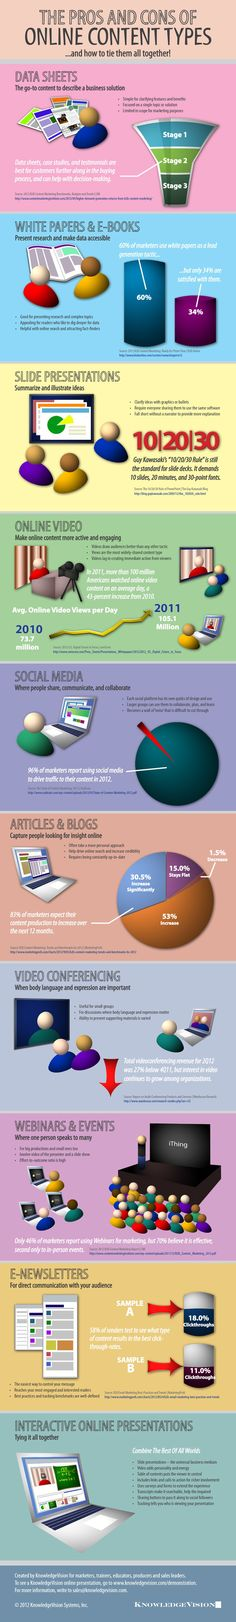 The Pros and Cons of Online #ContentMarketing Types [#Infographic]